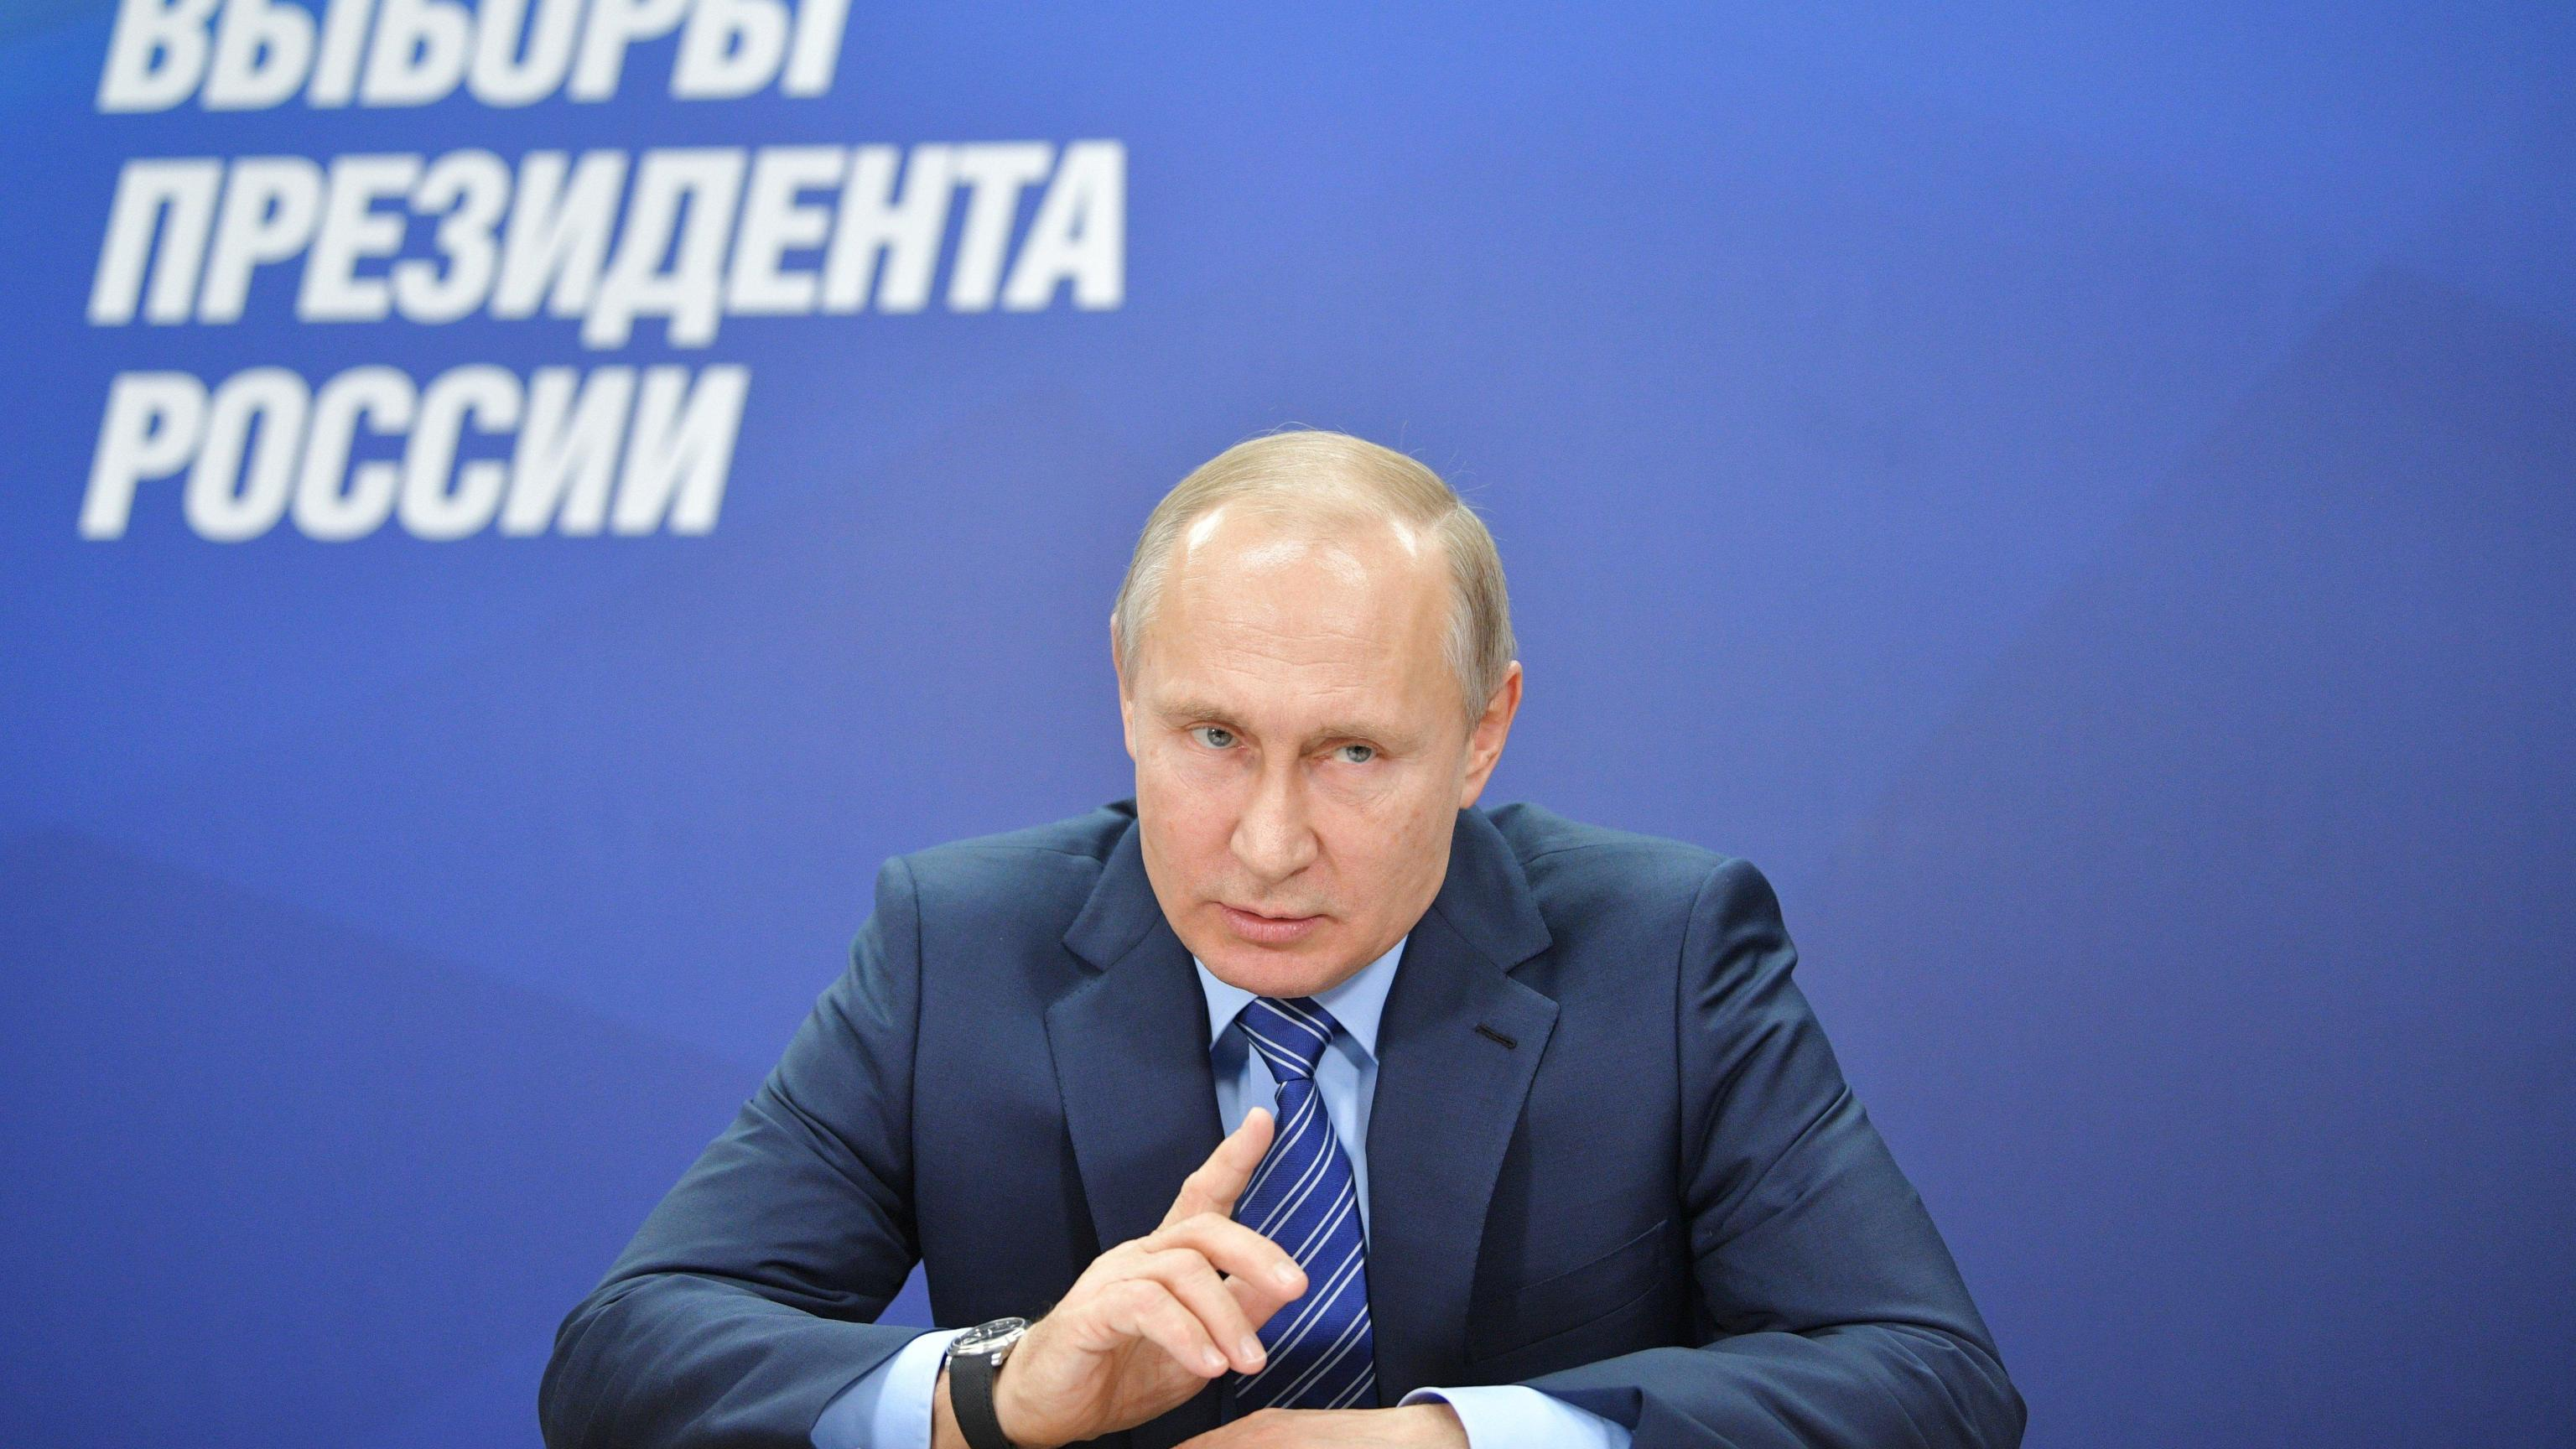 Putin, nessuna interferenza in Italia